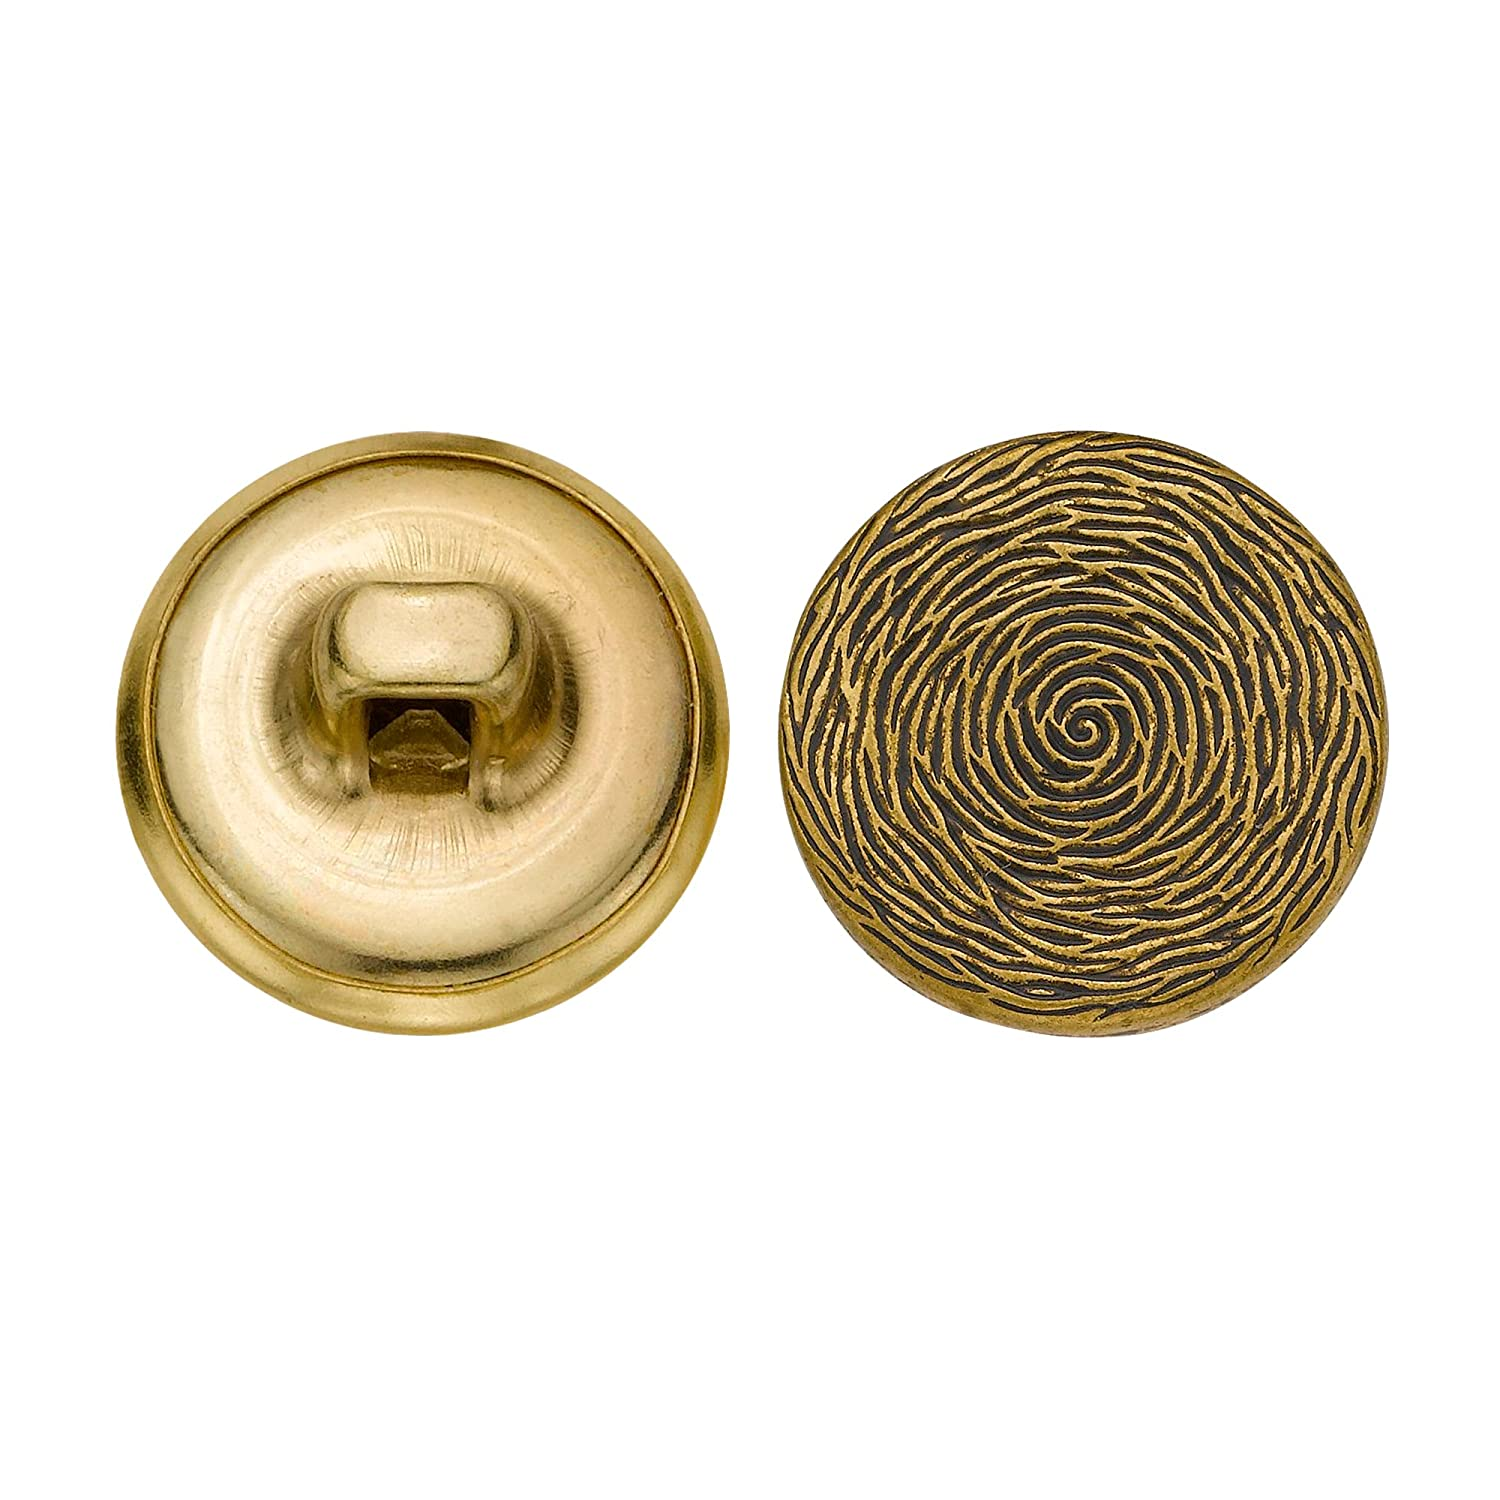 Antique Gold C/&C Metal Products 5261 Tree Rings Metal Button Size 24 Ligne 72-Pack C/&C Metal Products Corp